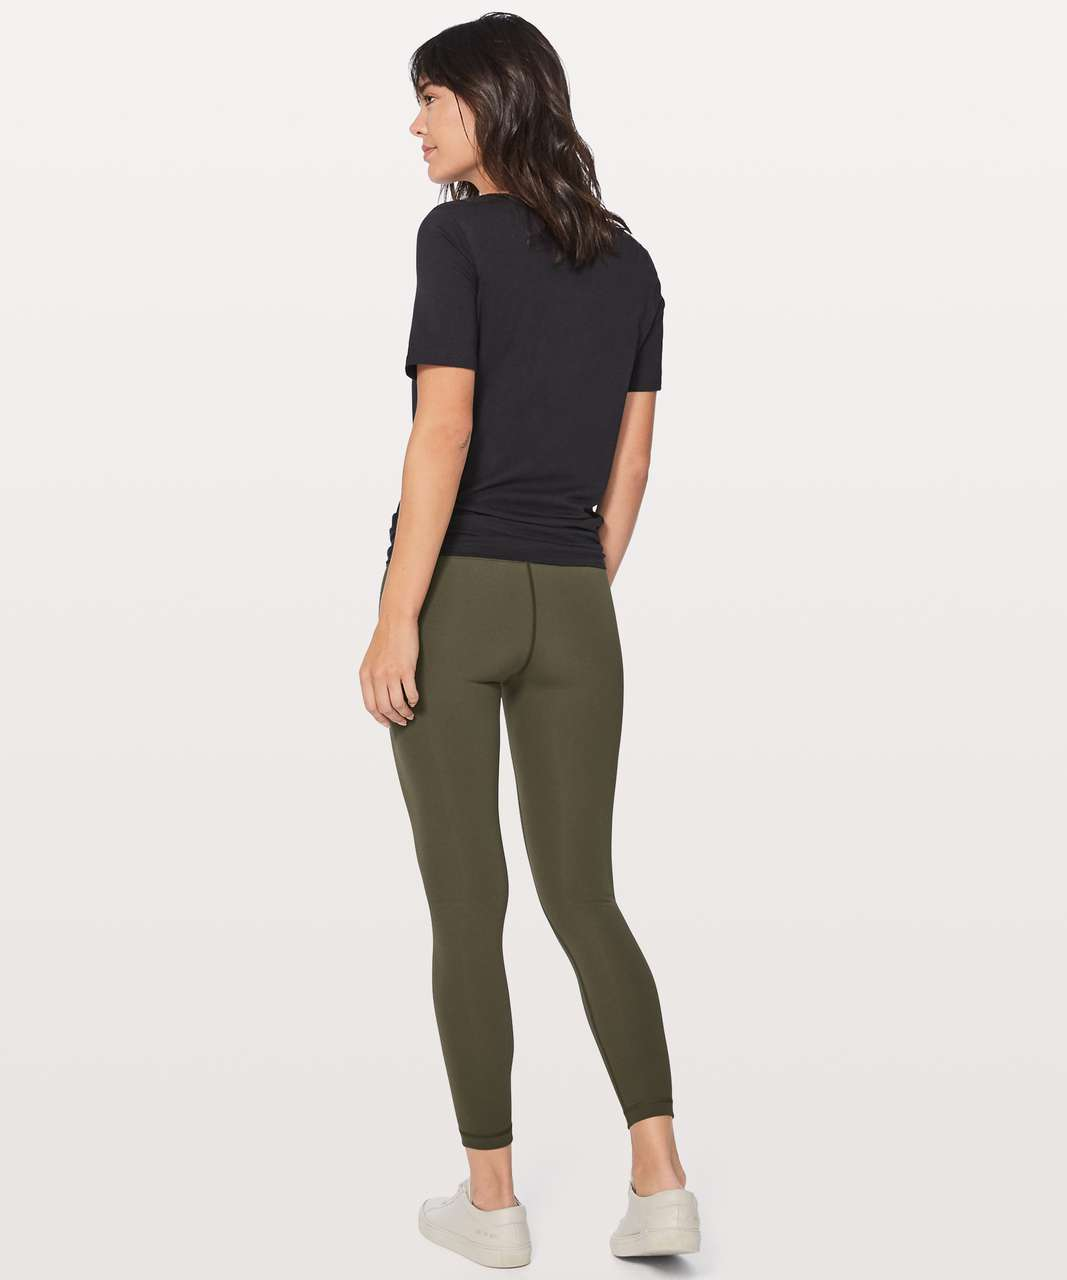 "Lululemon Wunder Under Hi-Rise 7/8 Tight *Full-On Luxtreme 25"" - Dark Olive"